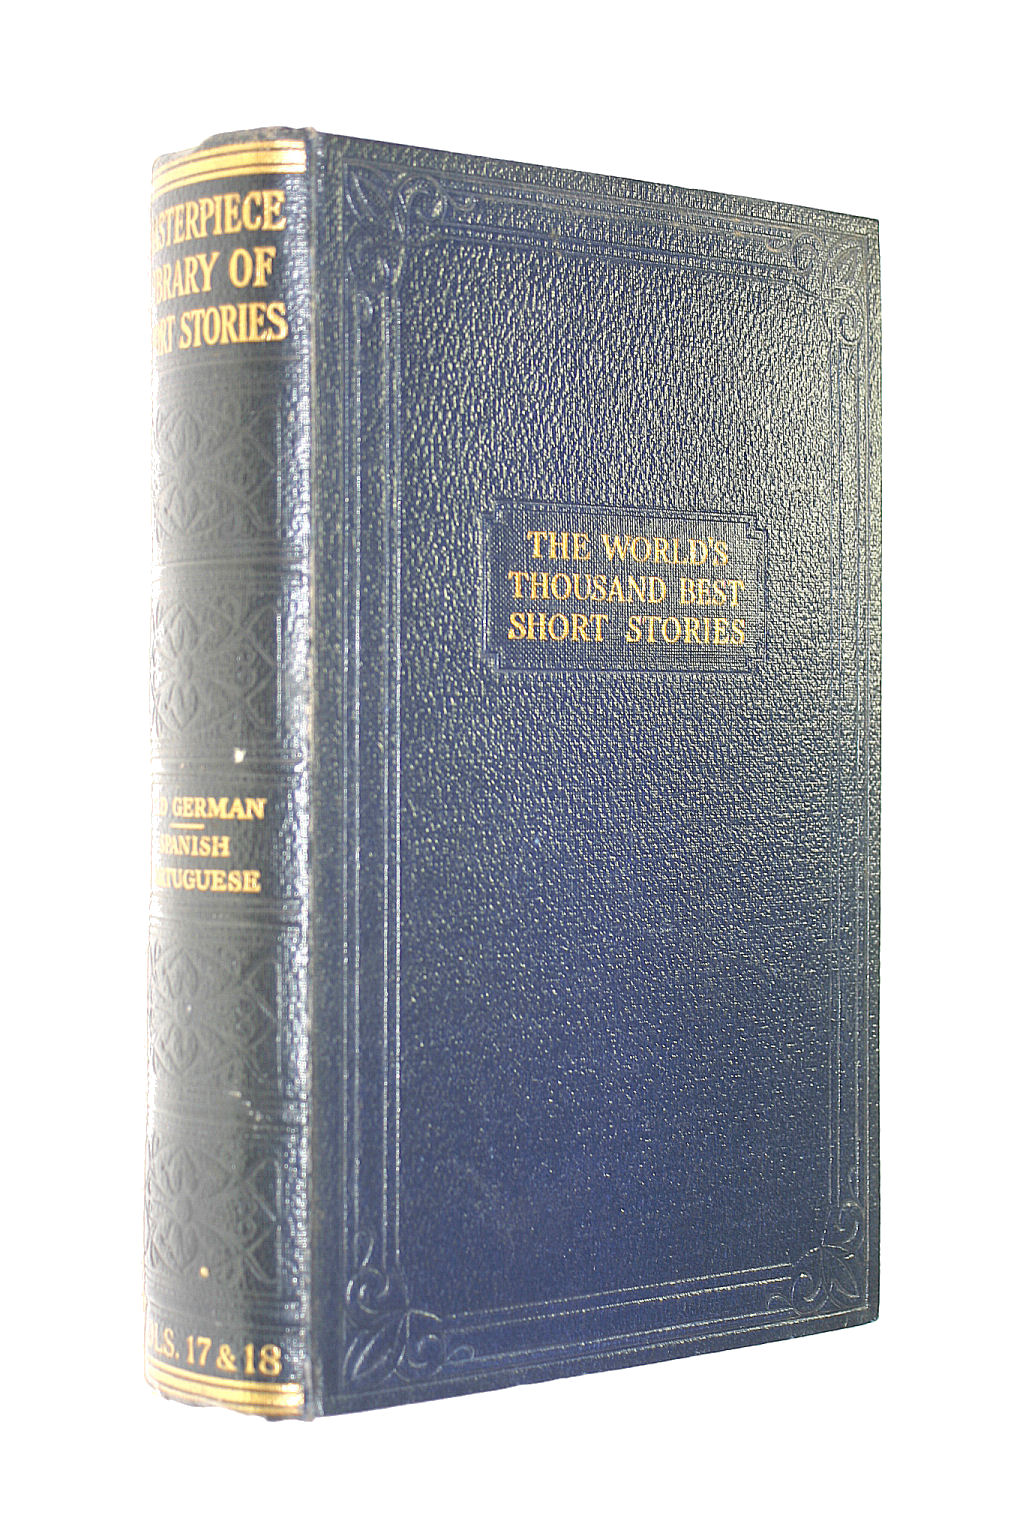 Image for The Masterpiece Library of Short Stories: The Thousand Best Complete Tales of all Times and all Countries. Vols 17 & 18: Old German, Spanish & Portugese